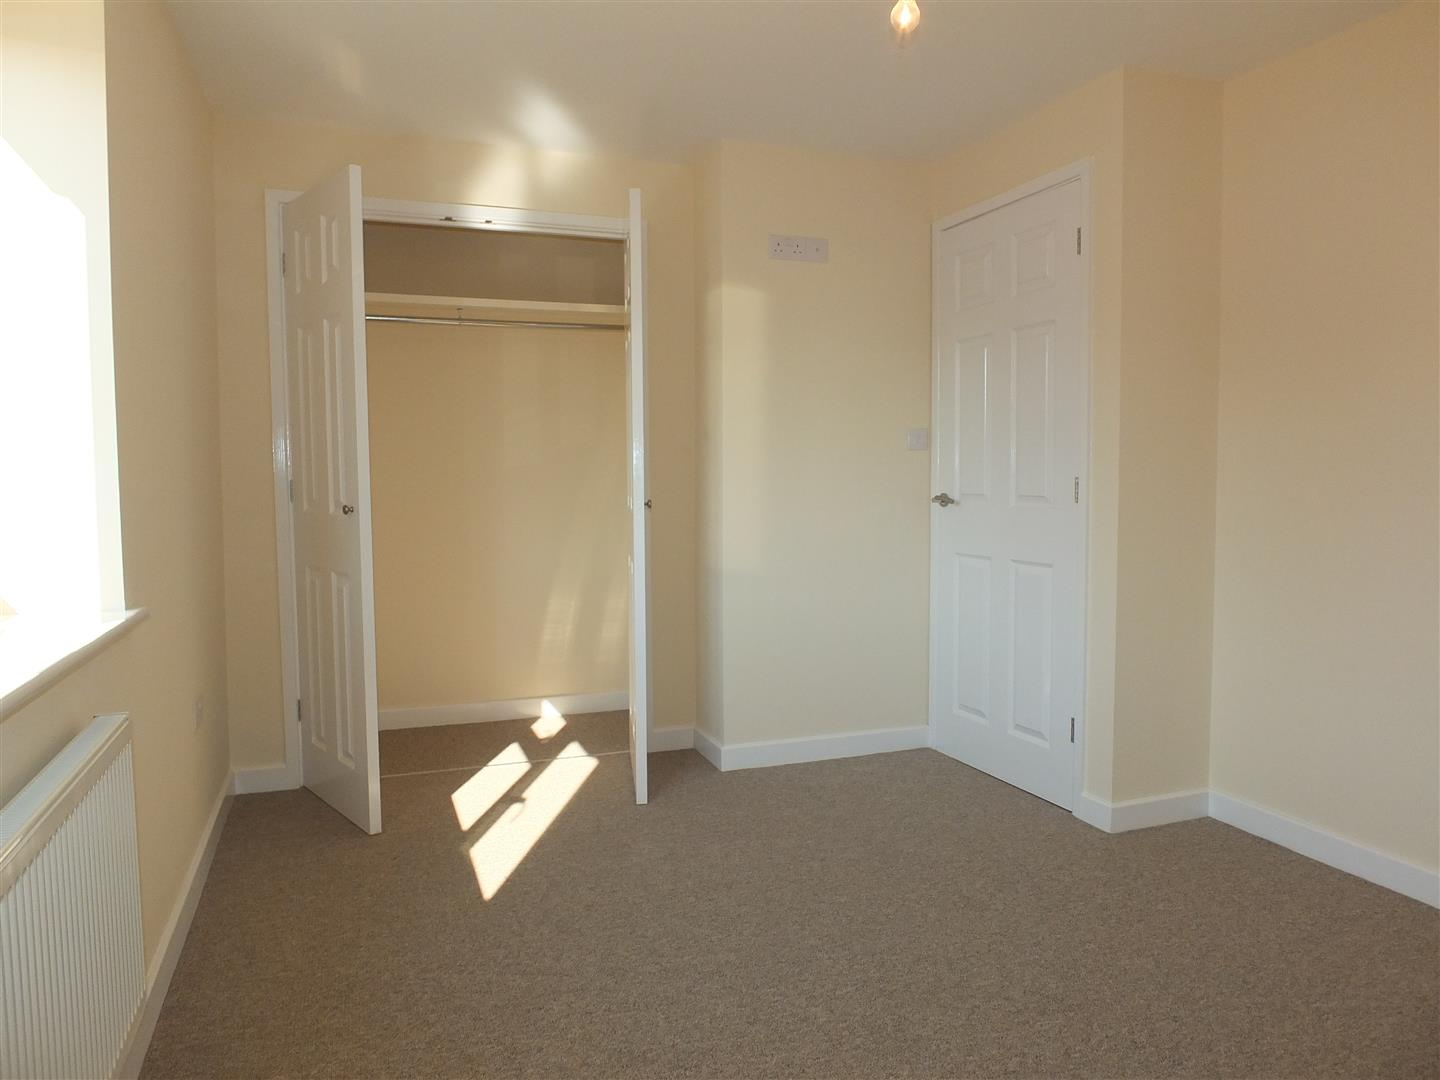 2 bed house to rent in Long Sutton Spalding, PE12 9LE 6